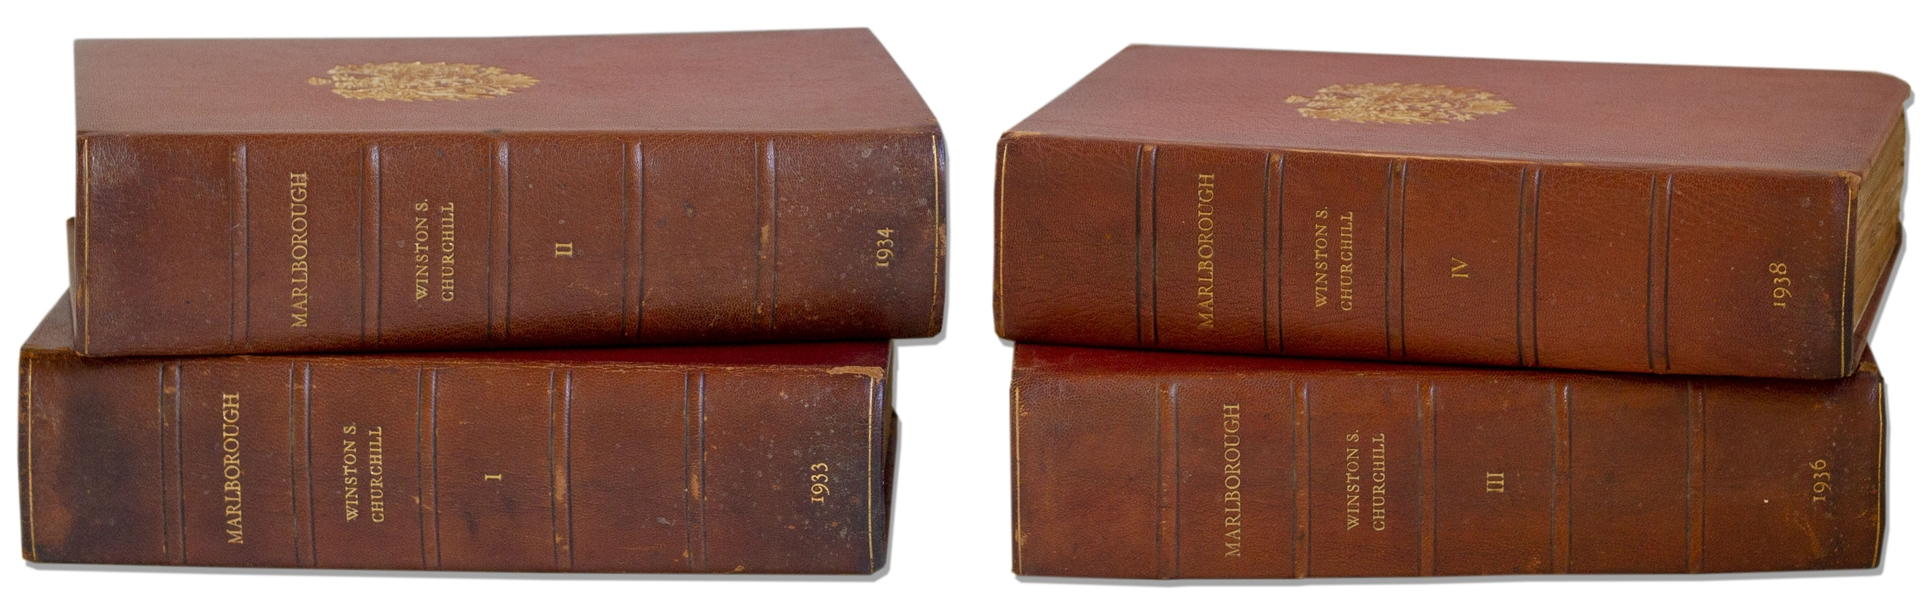 Winston Churchill Signed Limited First Edition of ''Marlborough: His Life and Times'' -- Rare Set Signed by Churchill, One of Only 155 in the Limited Edition, Here in the Original Bindings